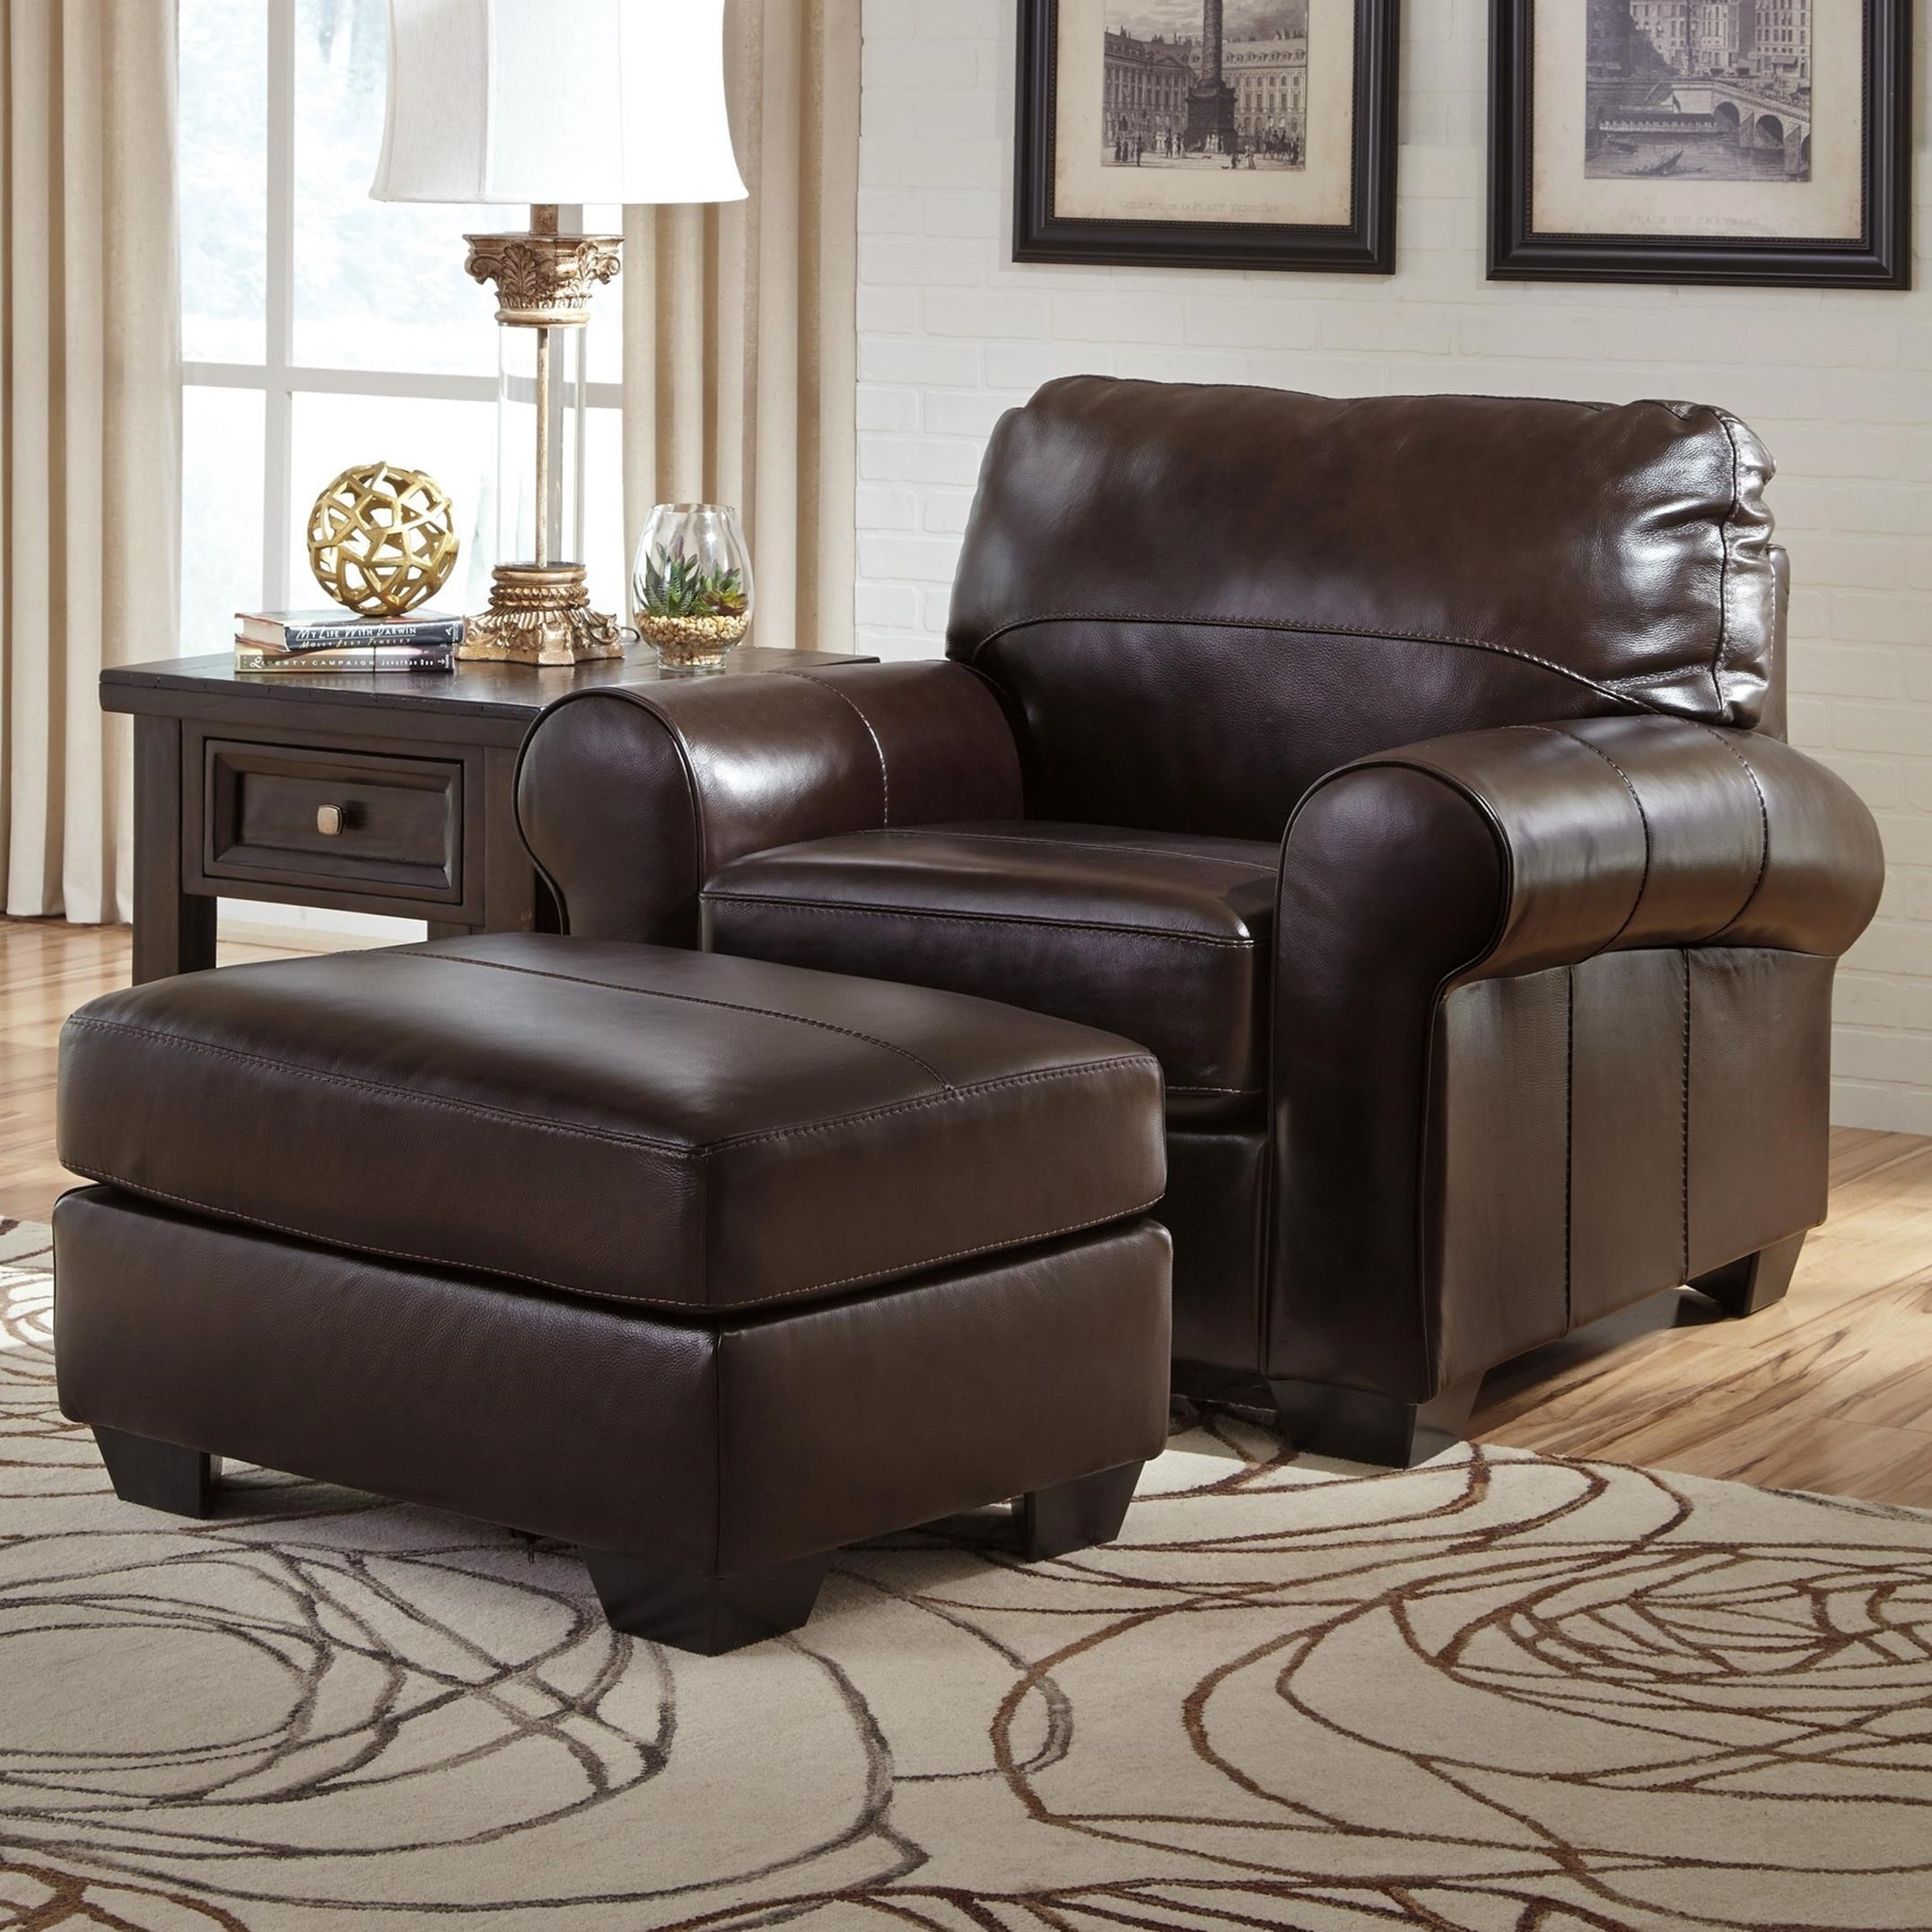 Signature Design By Ashley Canterelli Leather Match Chair Ottoman Olinde 39 S Furniture Chair